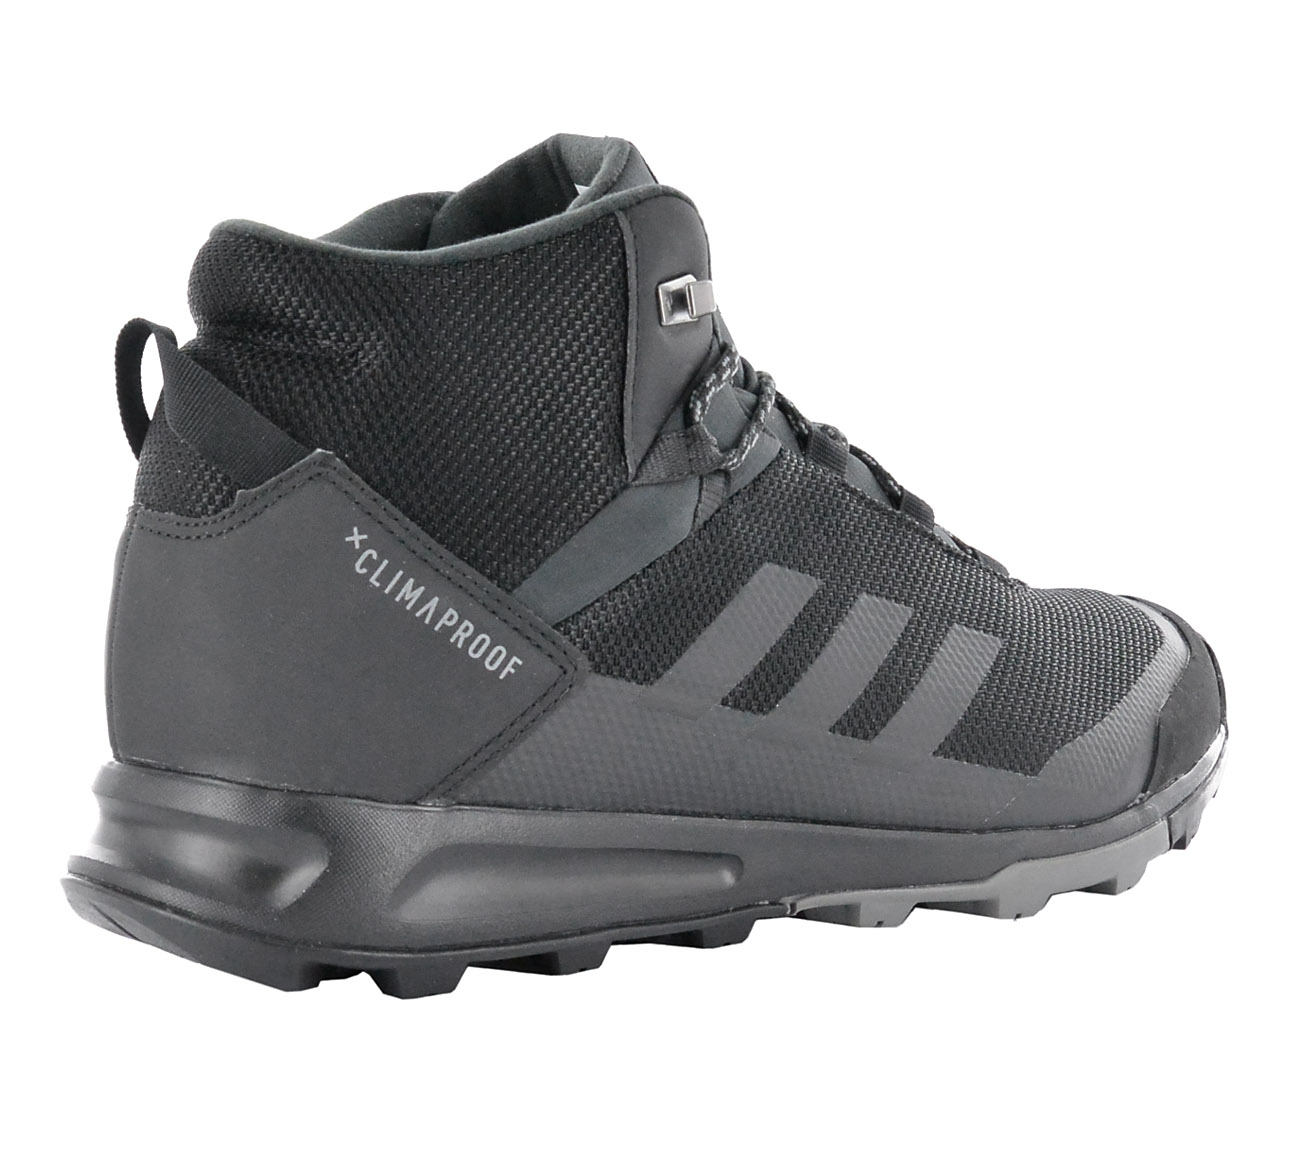 huge selection of c5dd4 f0b5a adidas Terrex Tivid Mid CP ClimaProof S80935